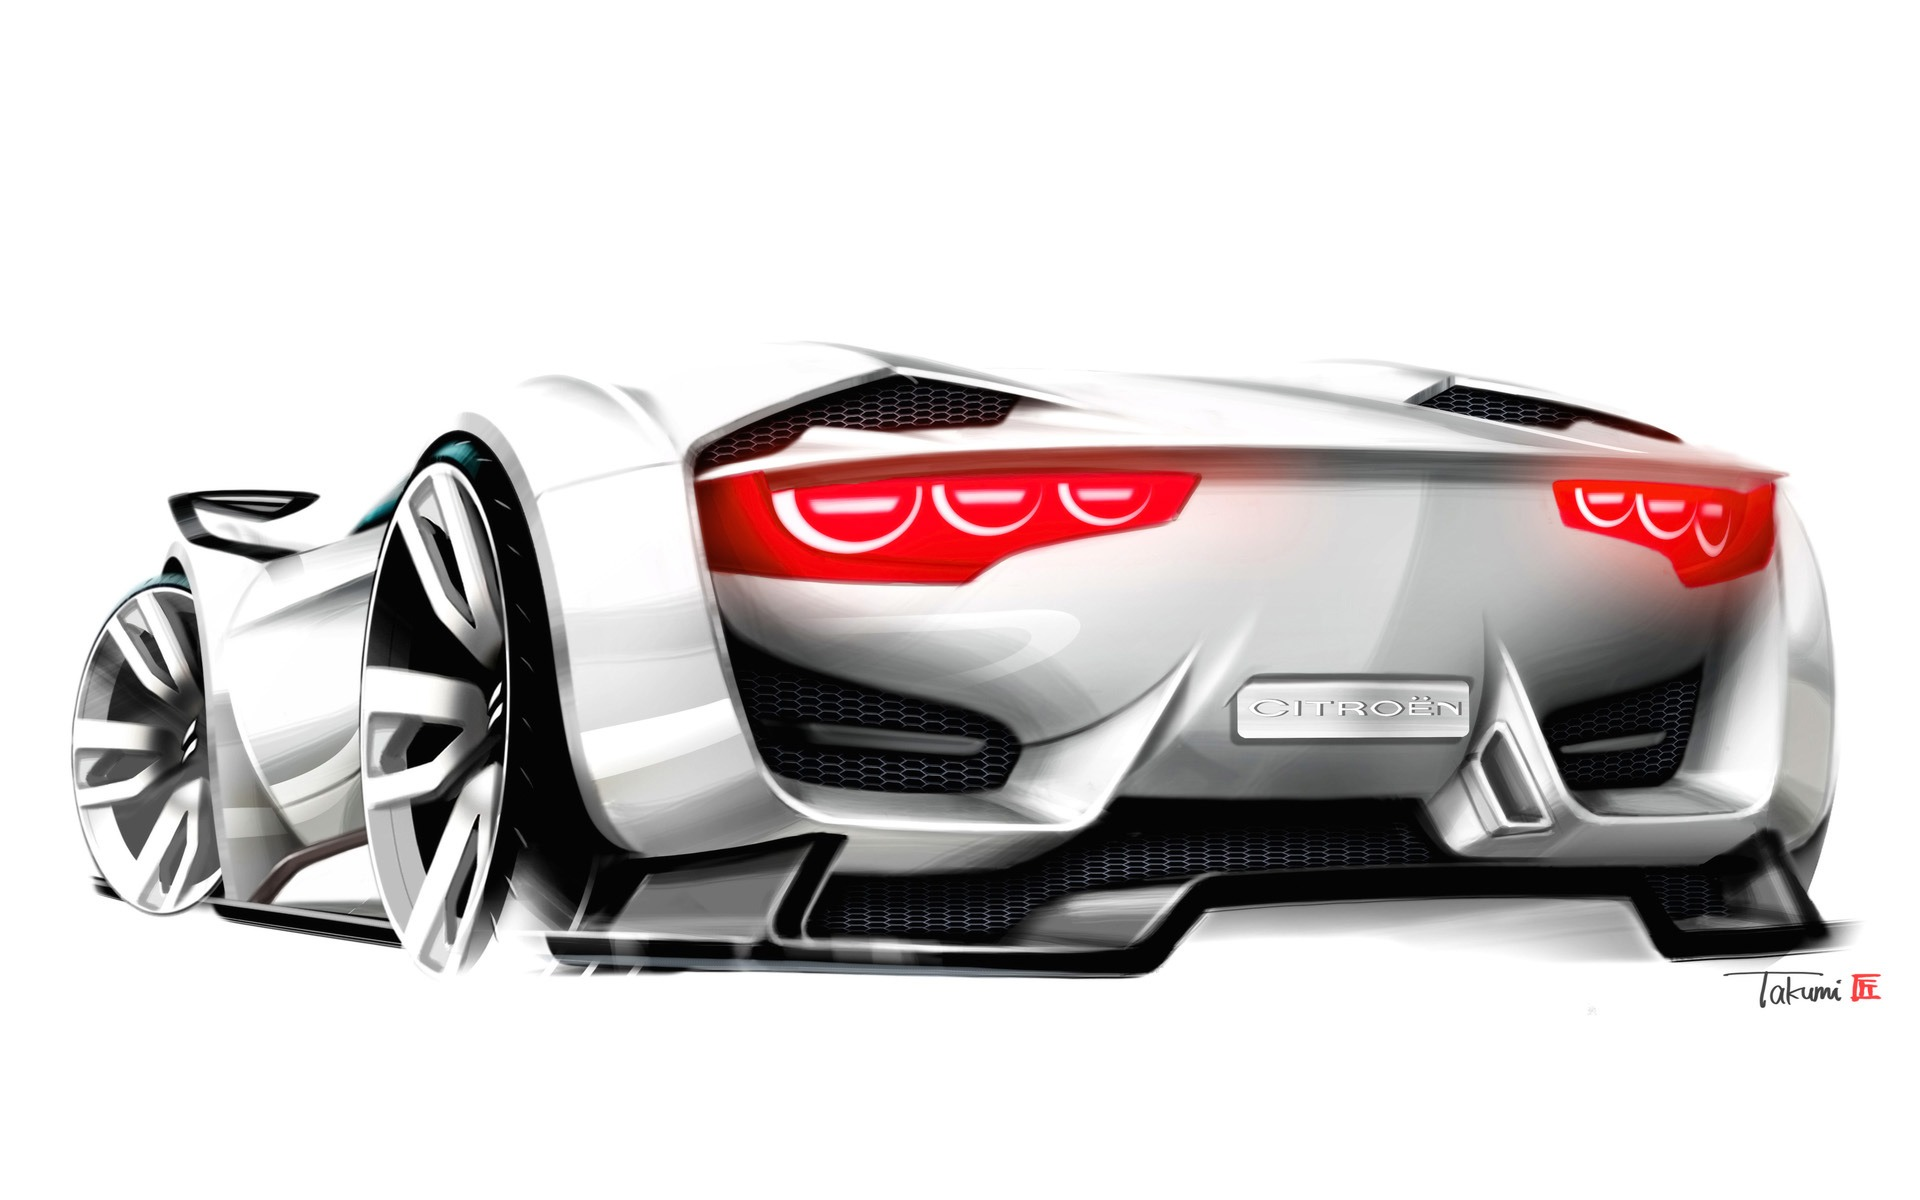 1920x1200 gtbycitroen concept wallpaper concept cars wallpapers